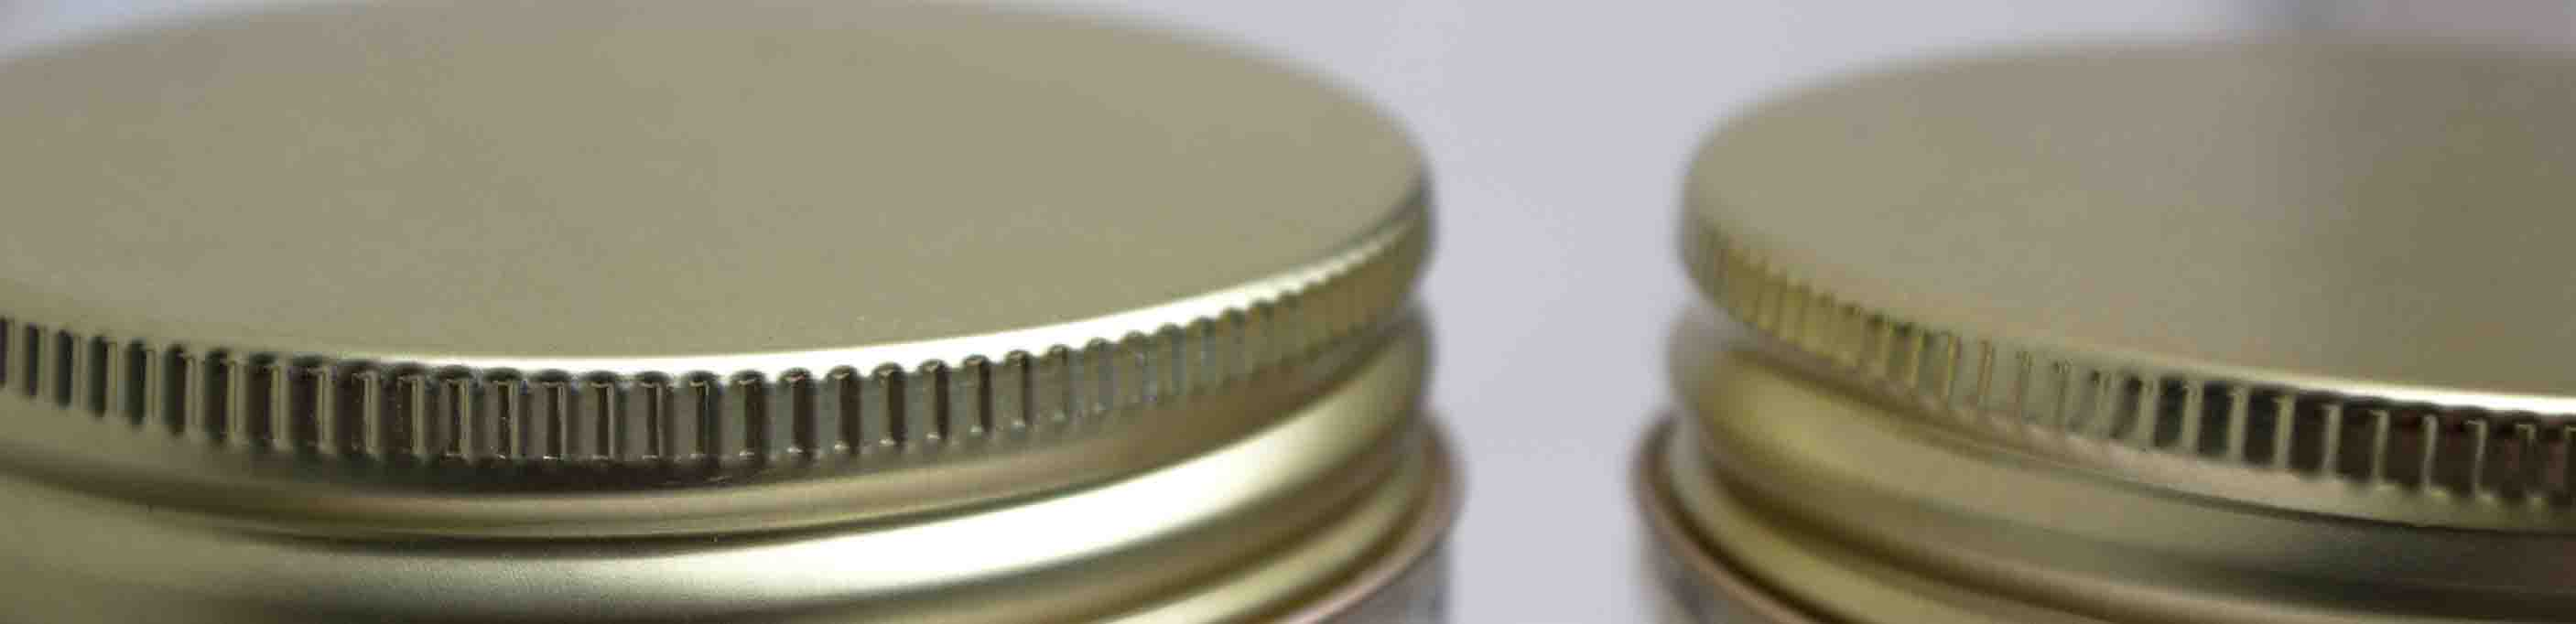 Metal Lids for Candle Jars - 400 - Silver